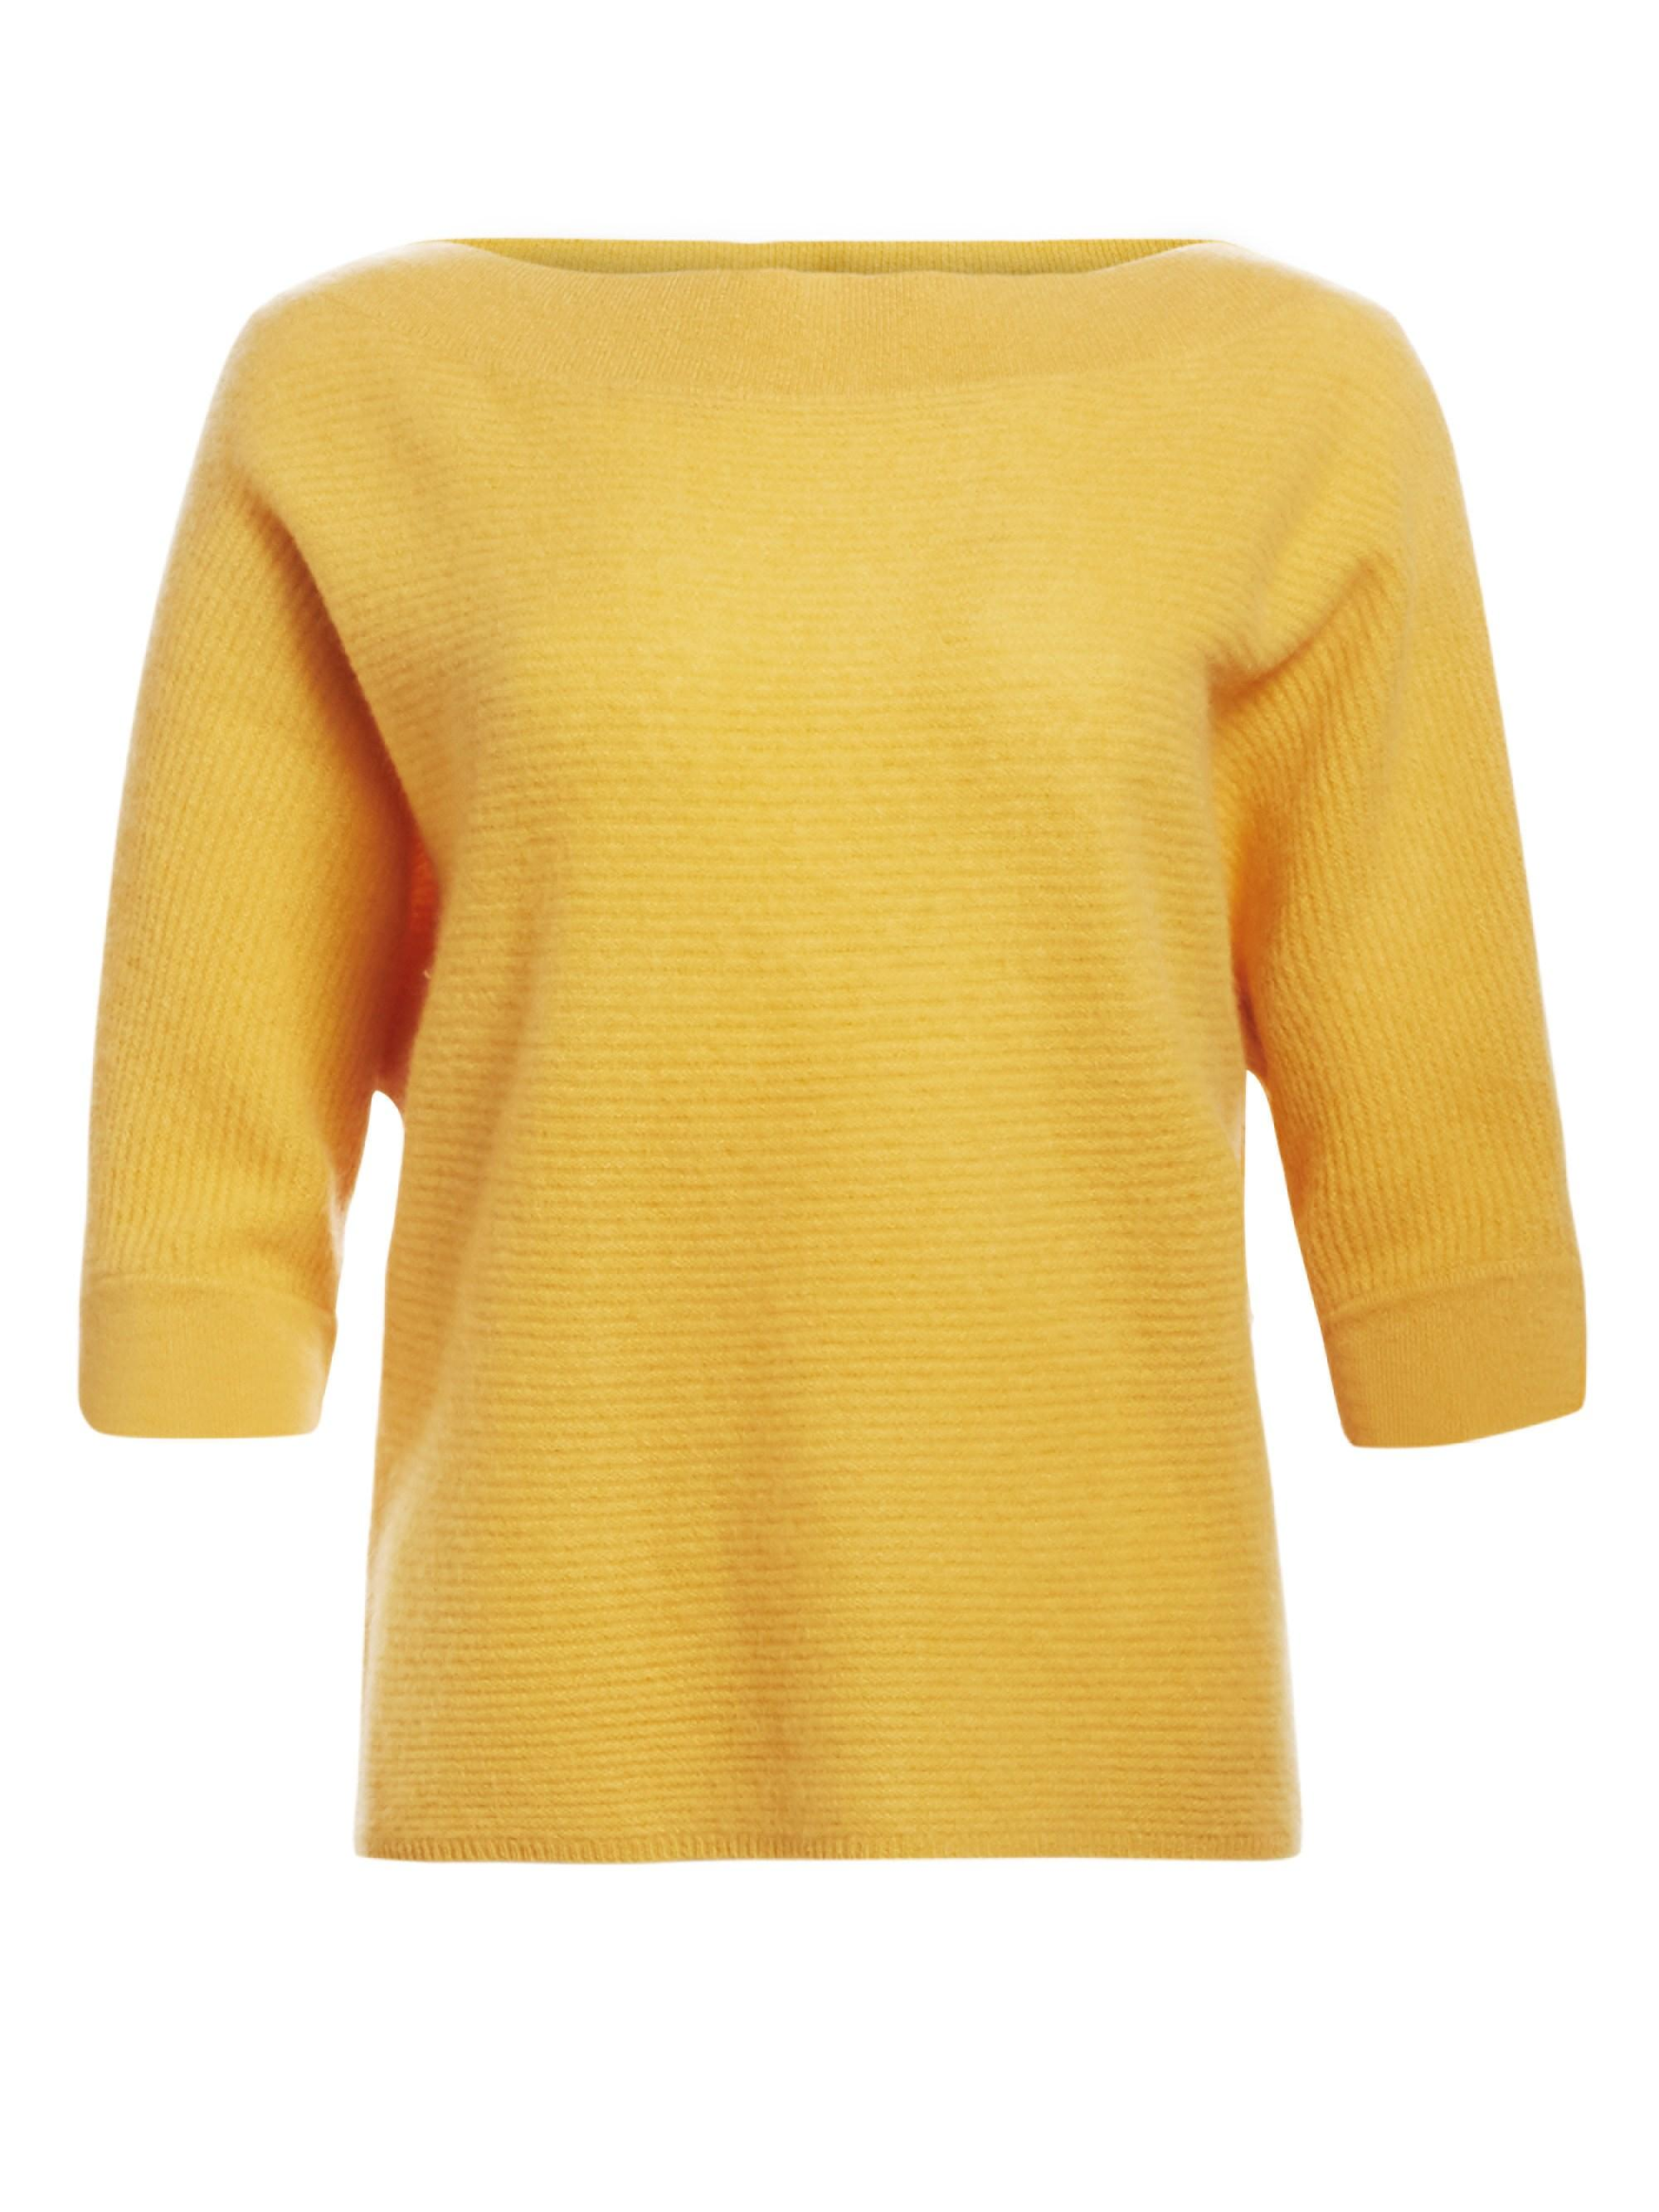 a1cba05772 Saks Fifth Avenue. Yellow Women s Link Stitch Boatneck Cashmere Jumper ...